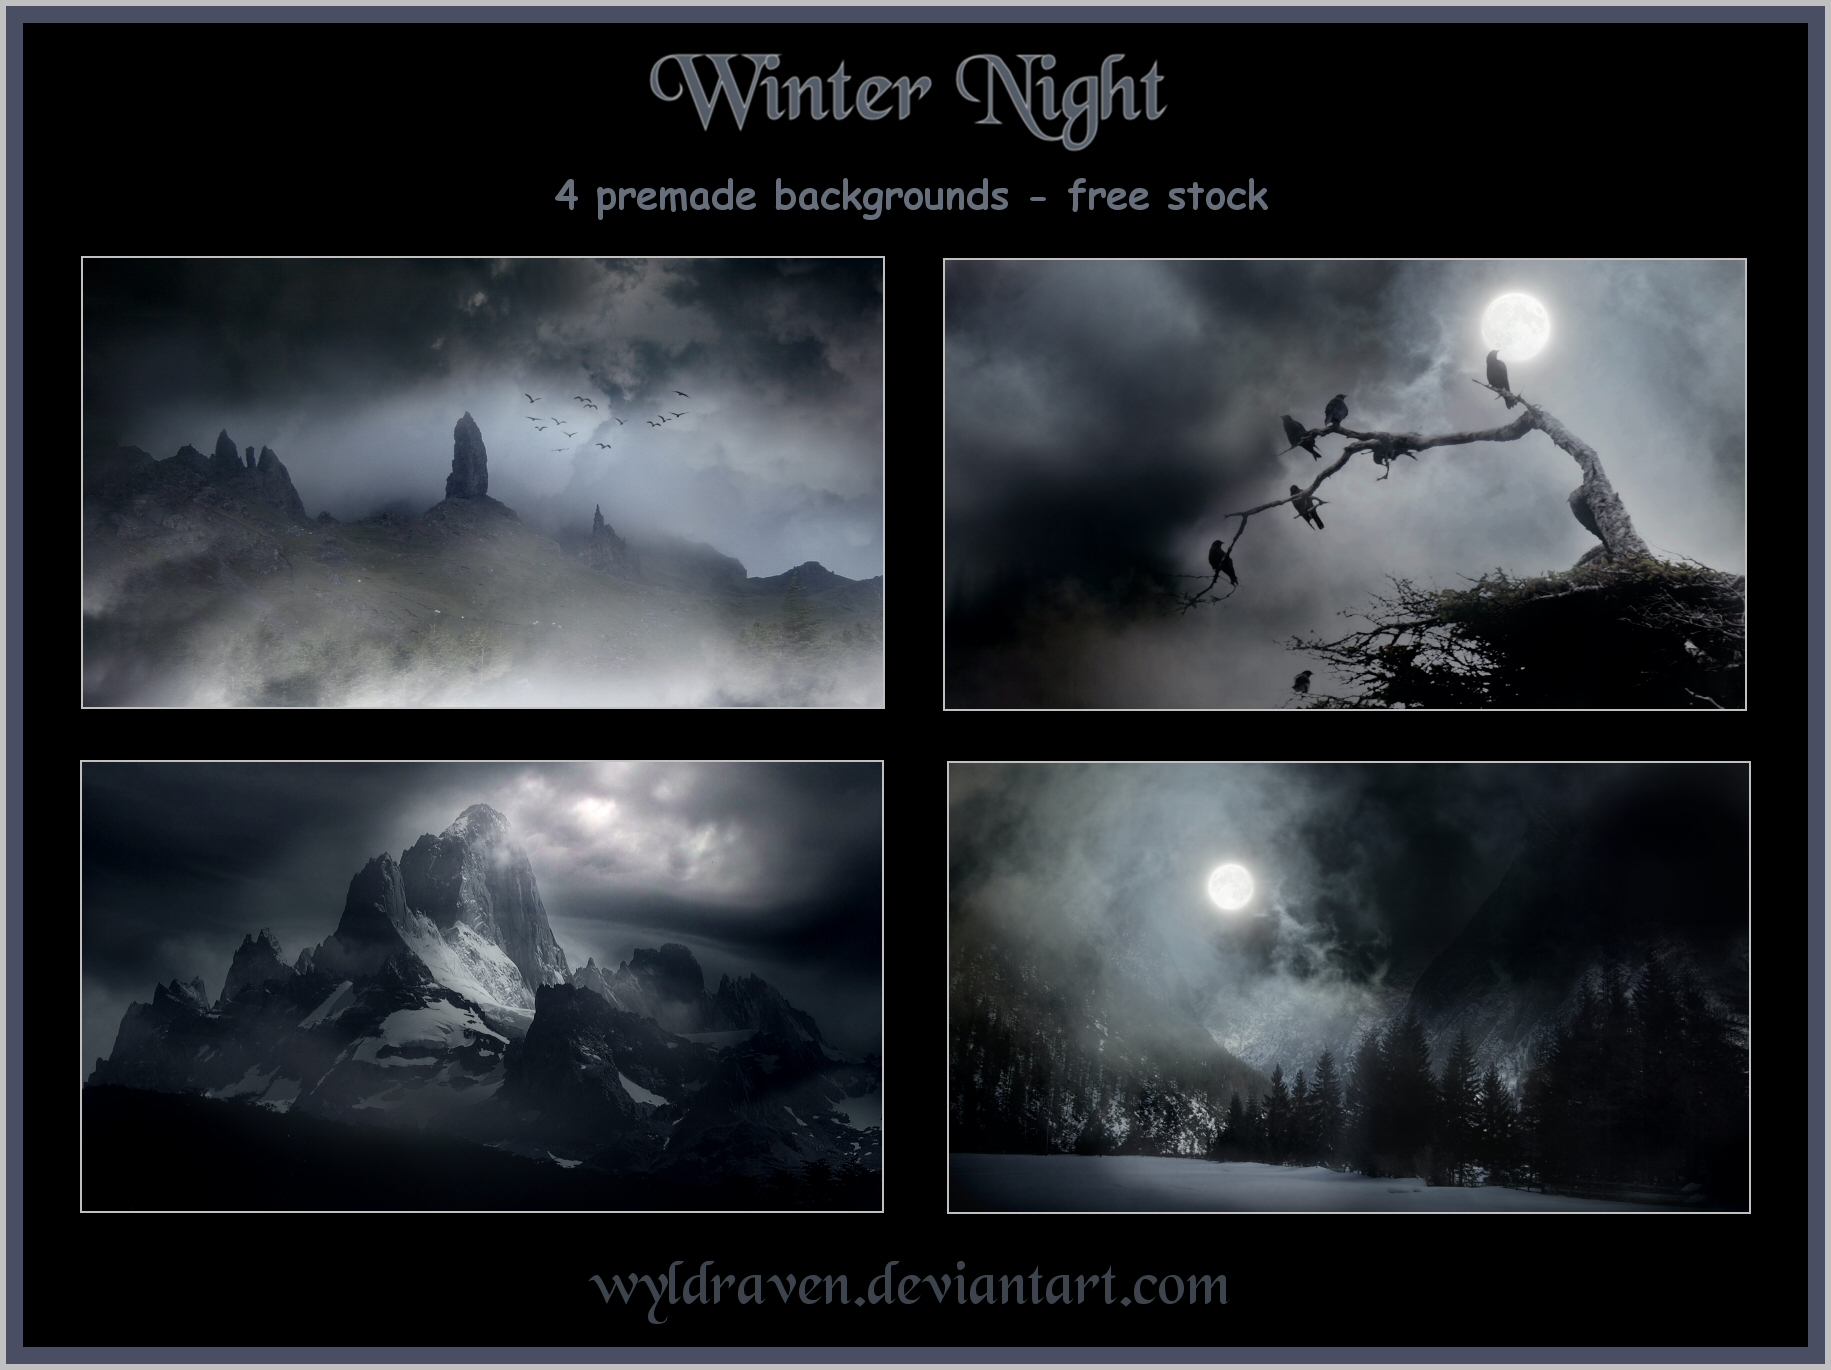 Winter Night backgrounds by wyldraven 1831x1370